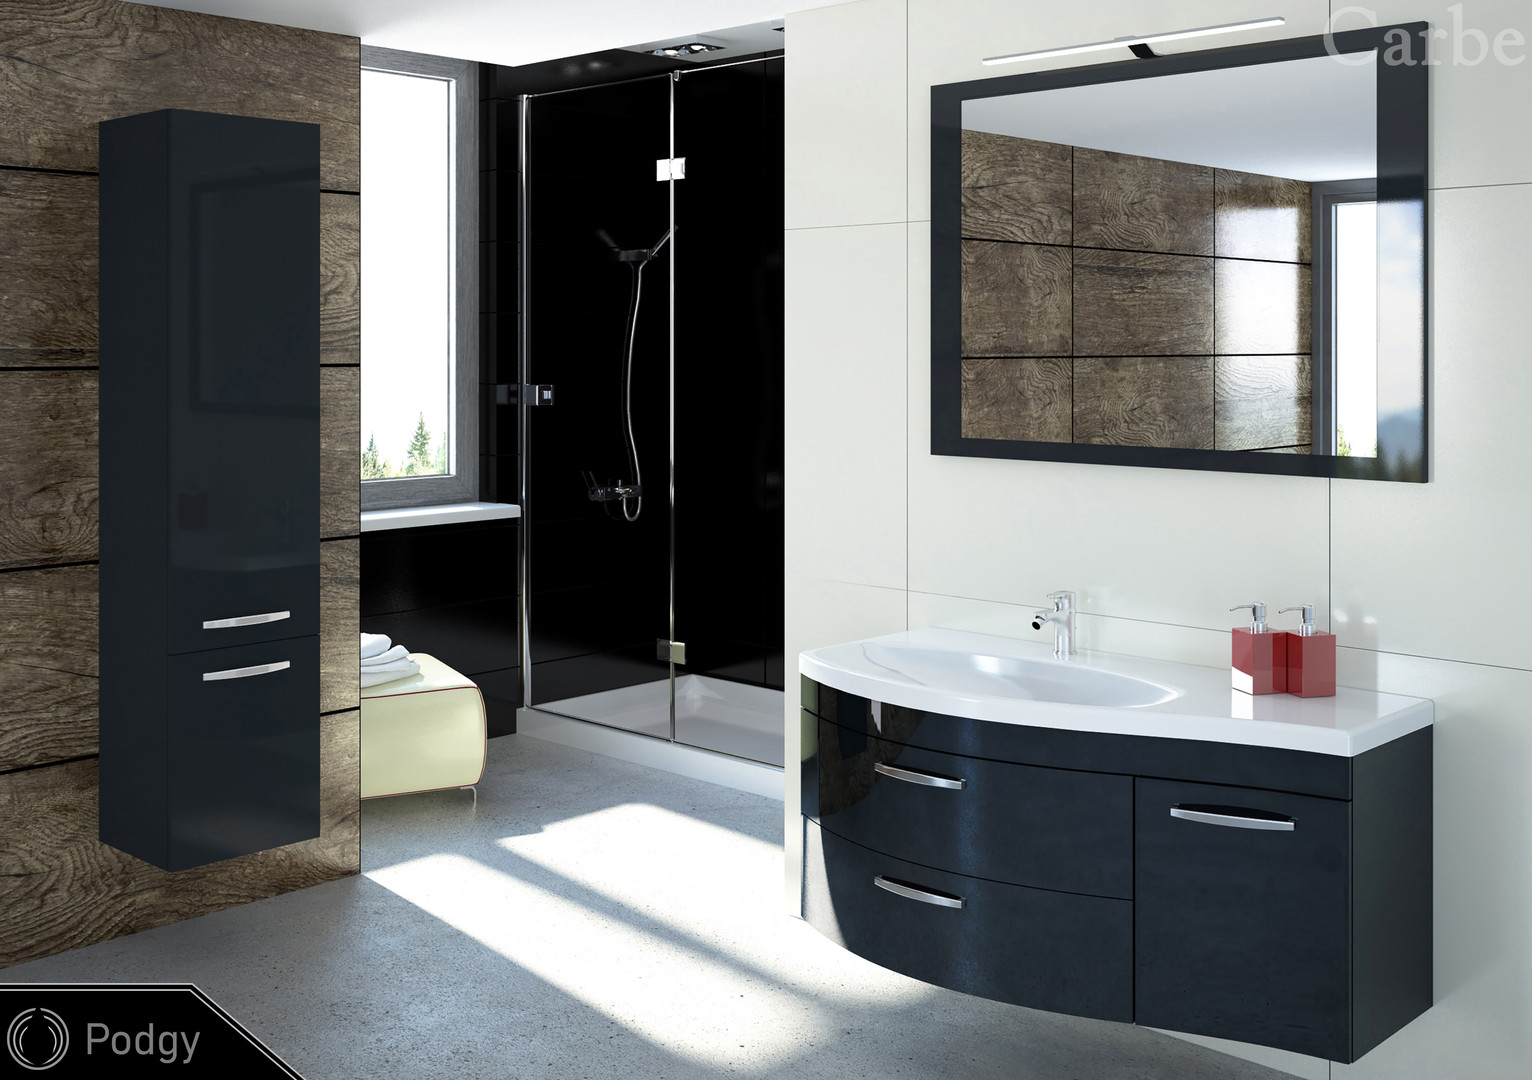 Podgy - Anthracite HG, Dolmite Washbasin, Soft Closing